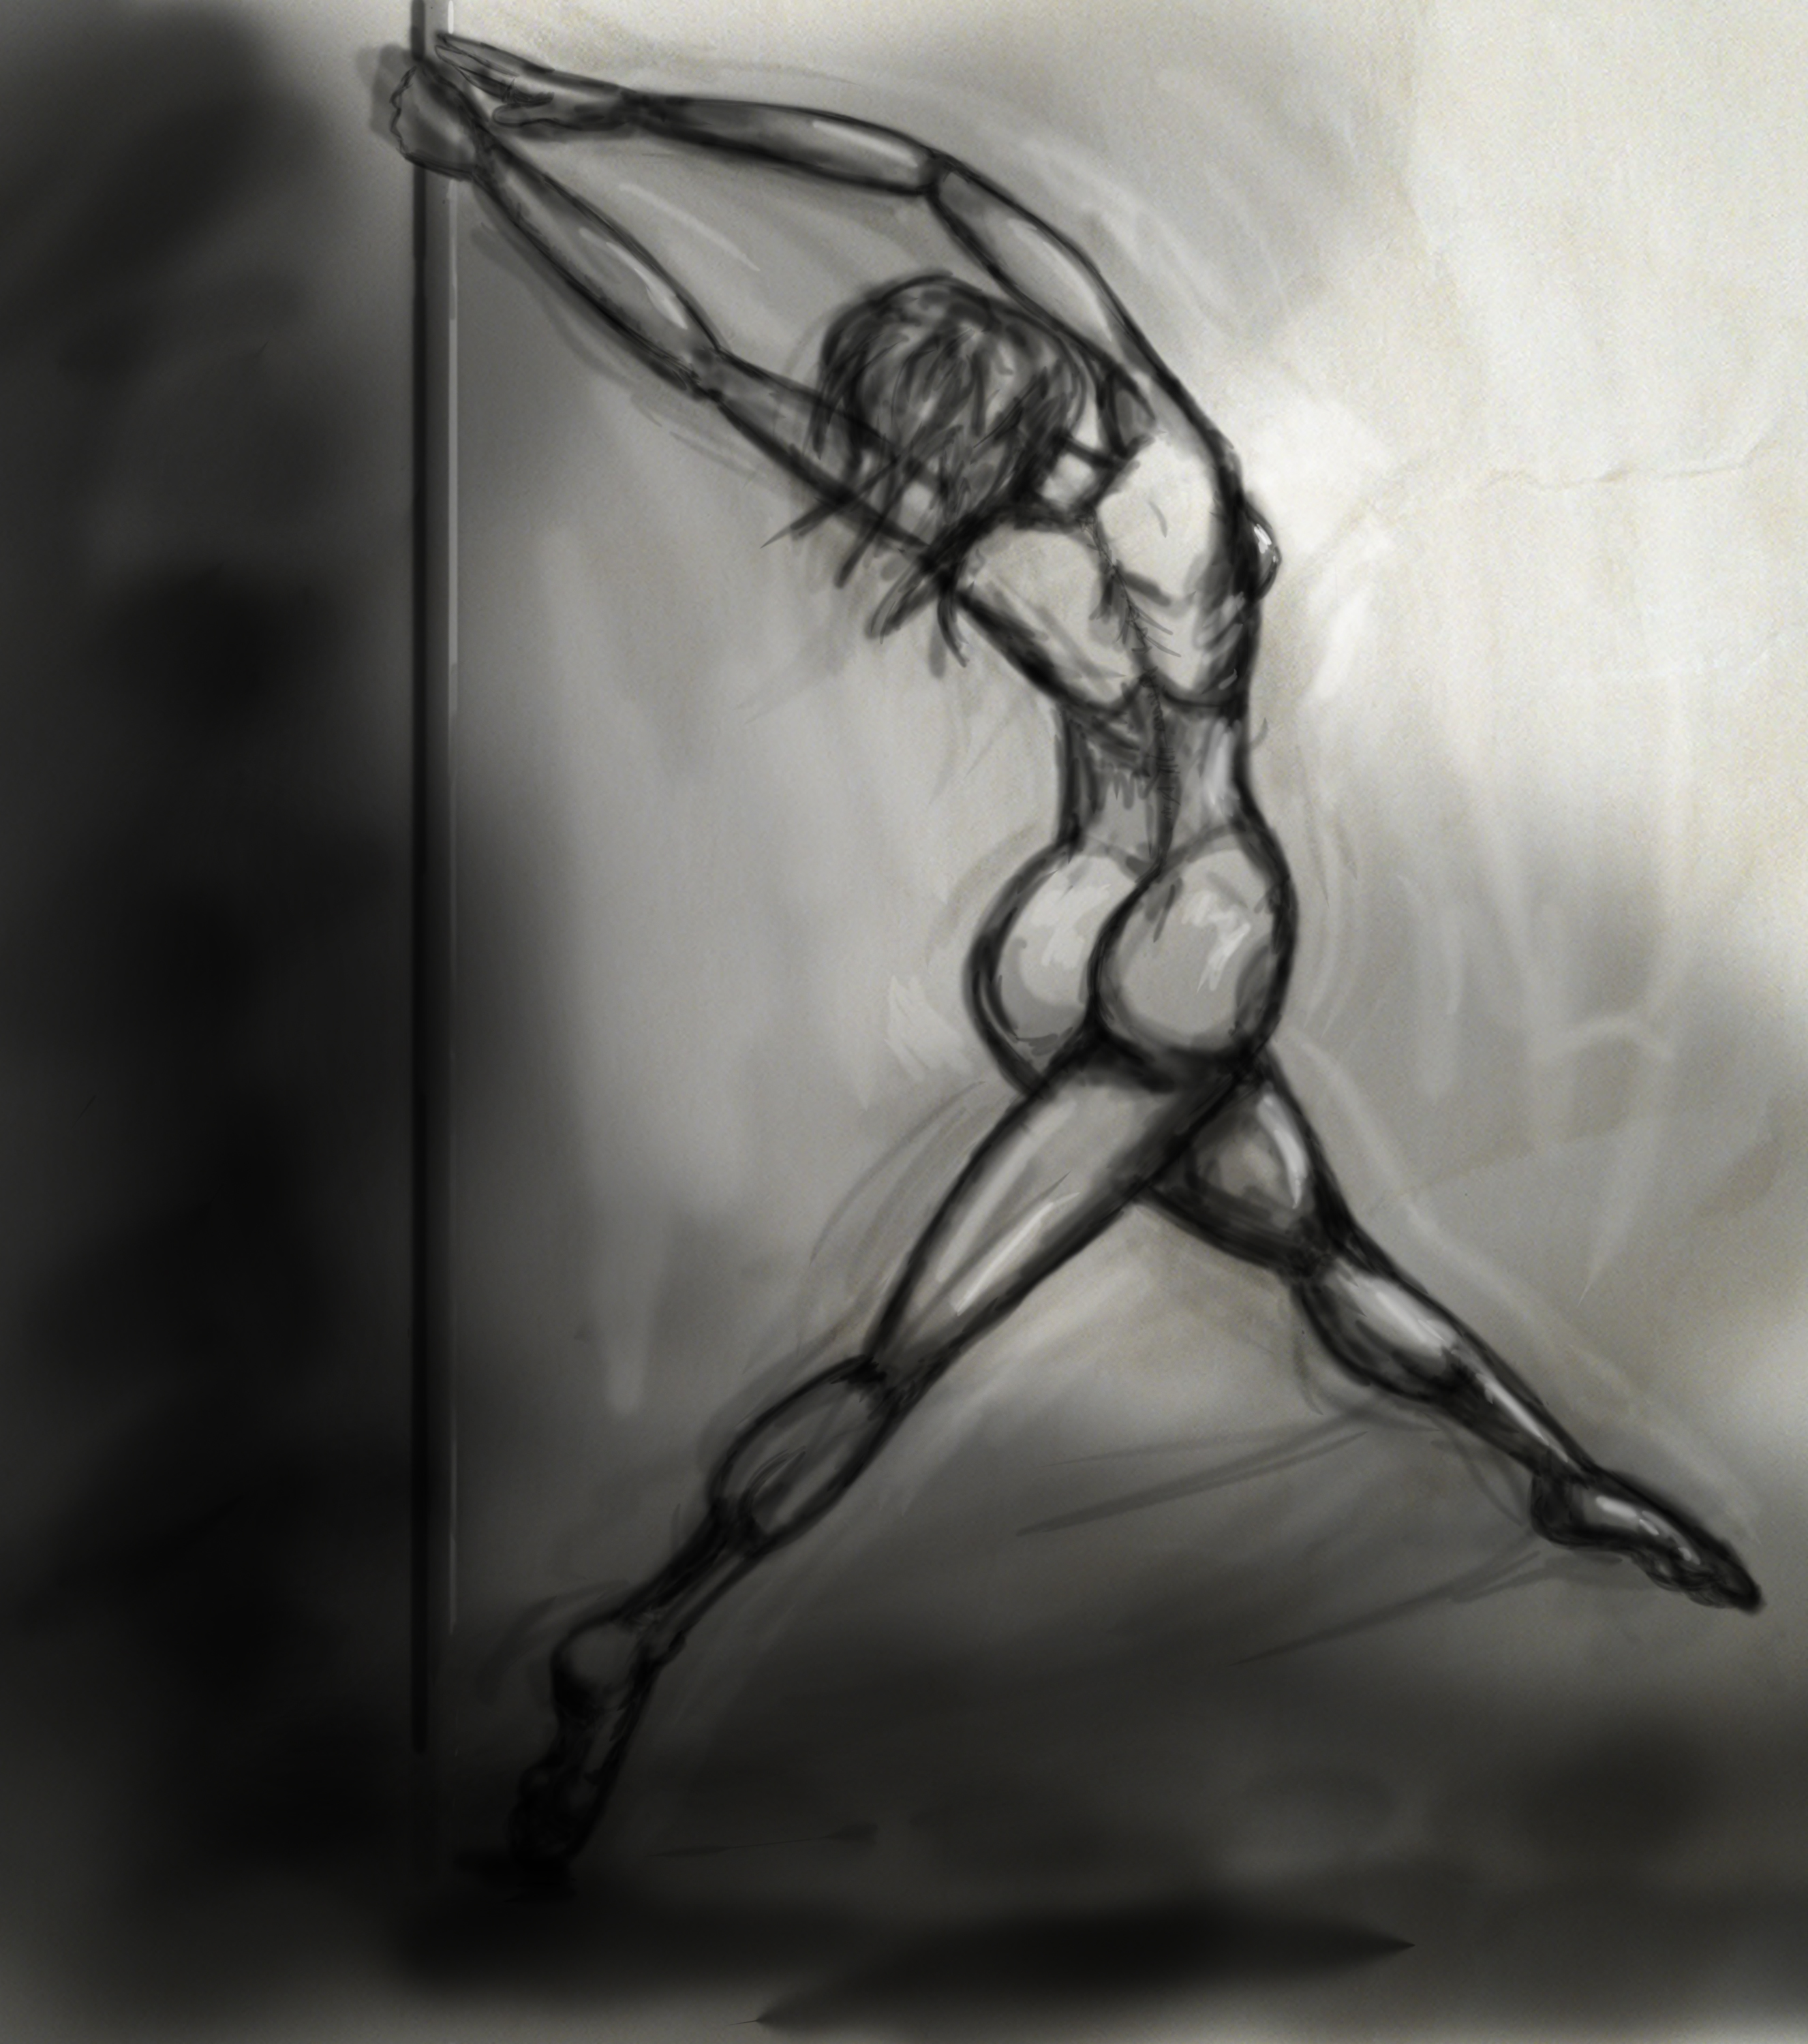 Digital Sketch of a Dancer